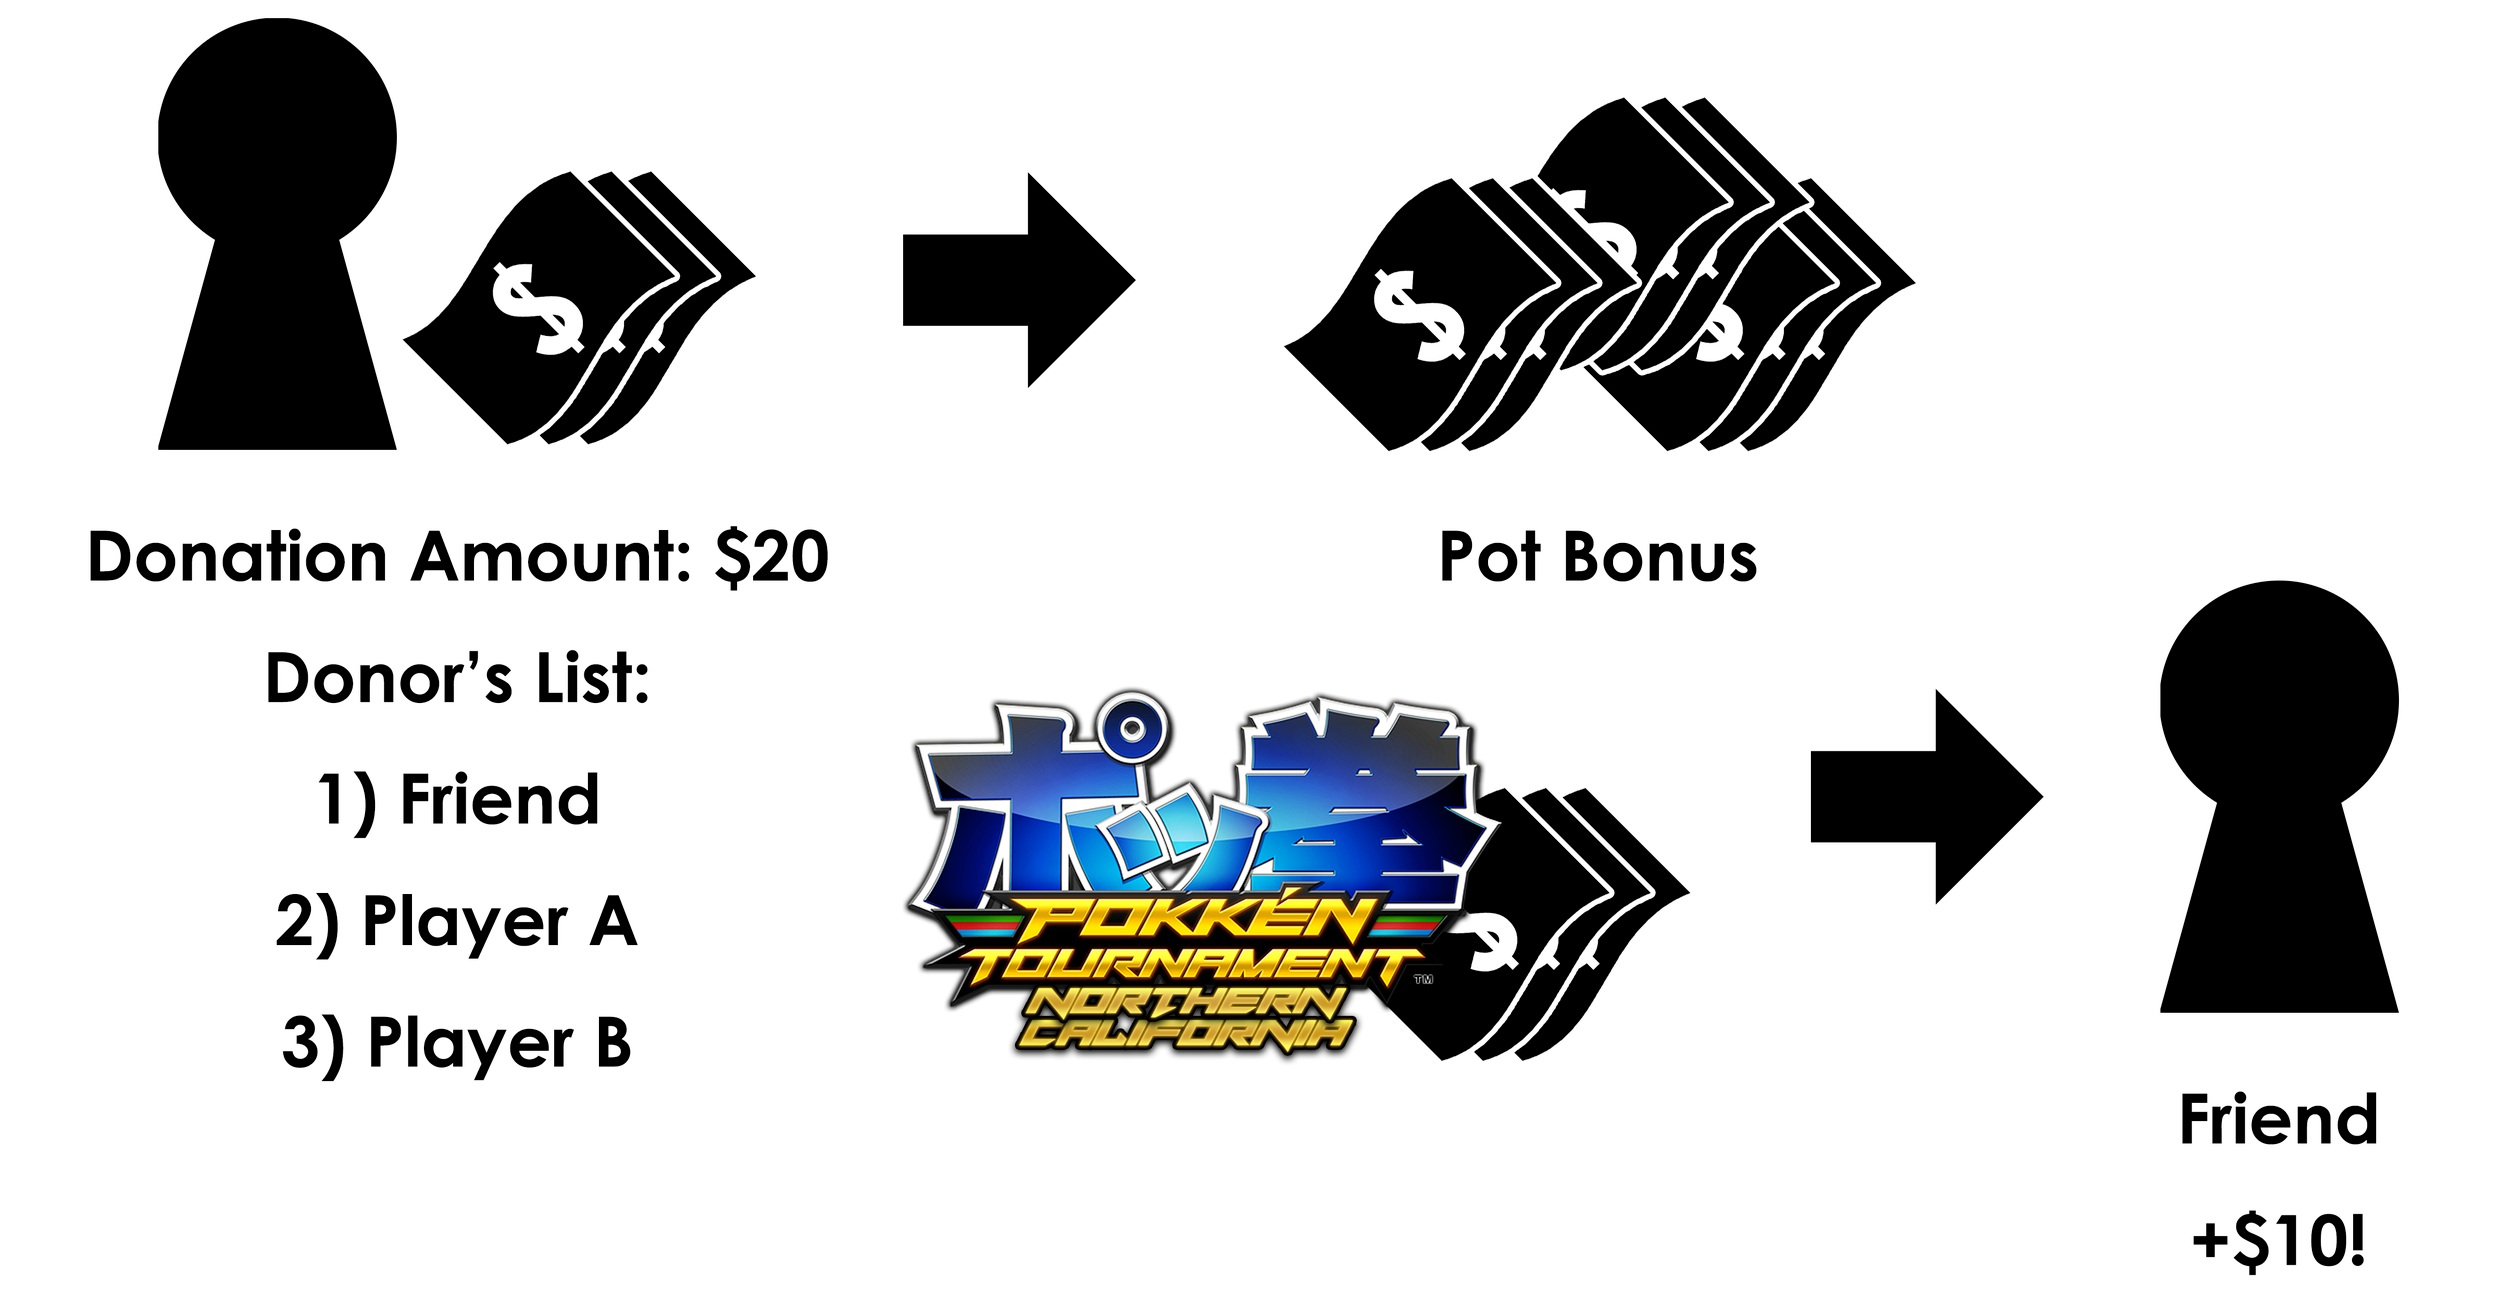 Donating to the pot bonus means more money for the event, and donors still get to support players they like!